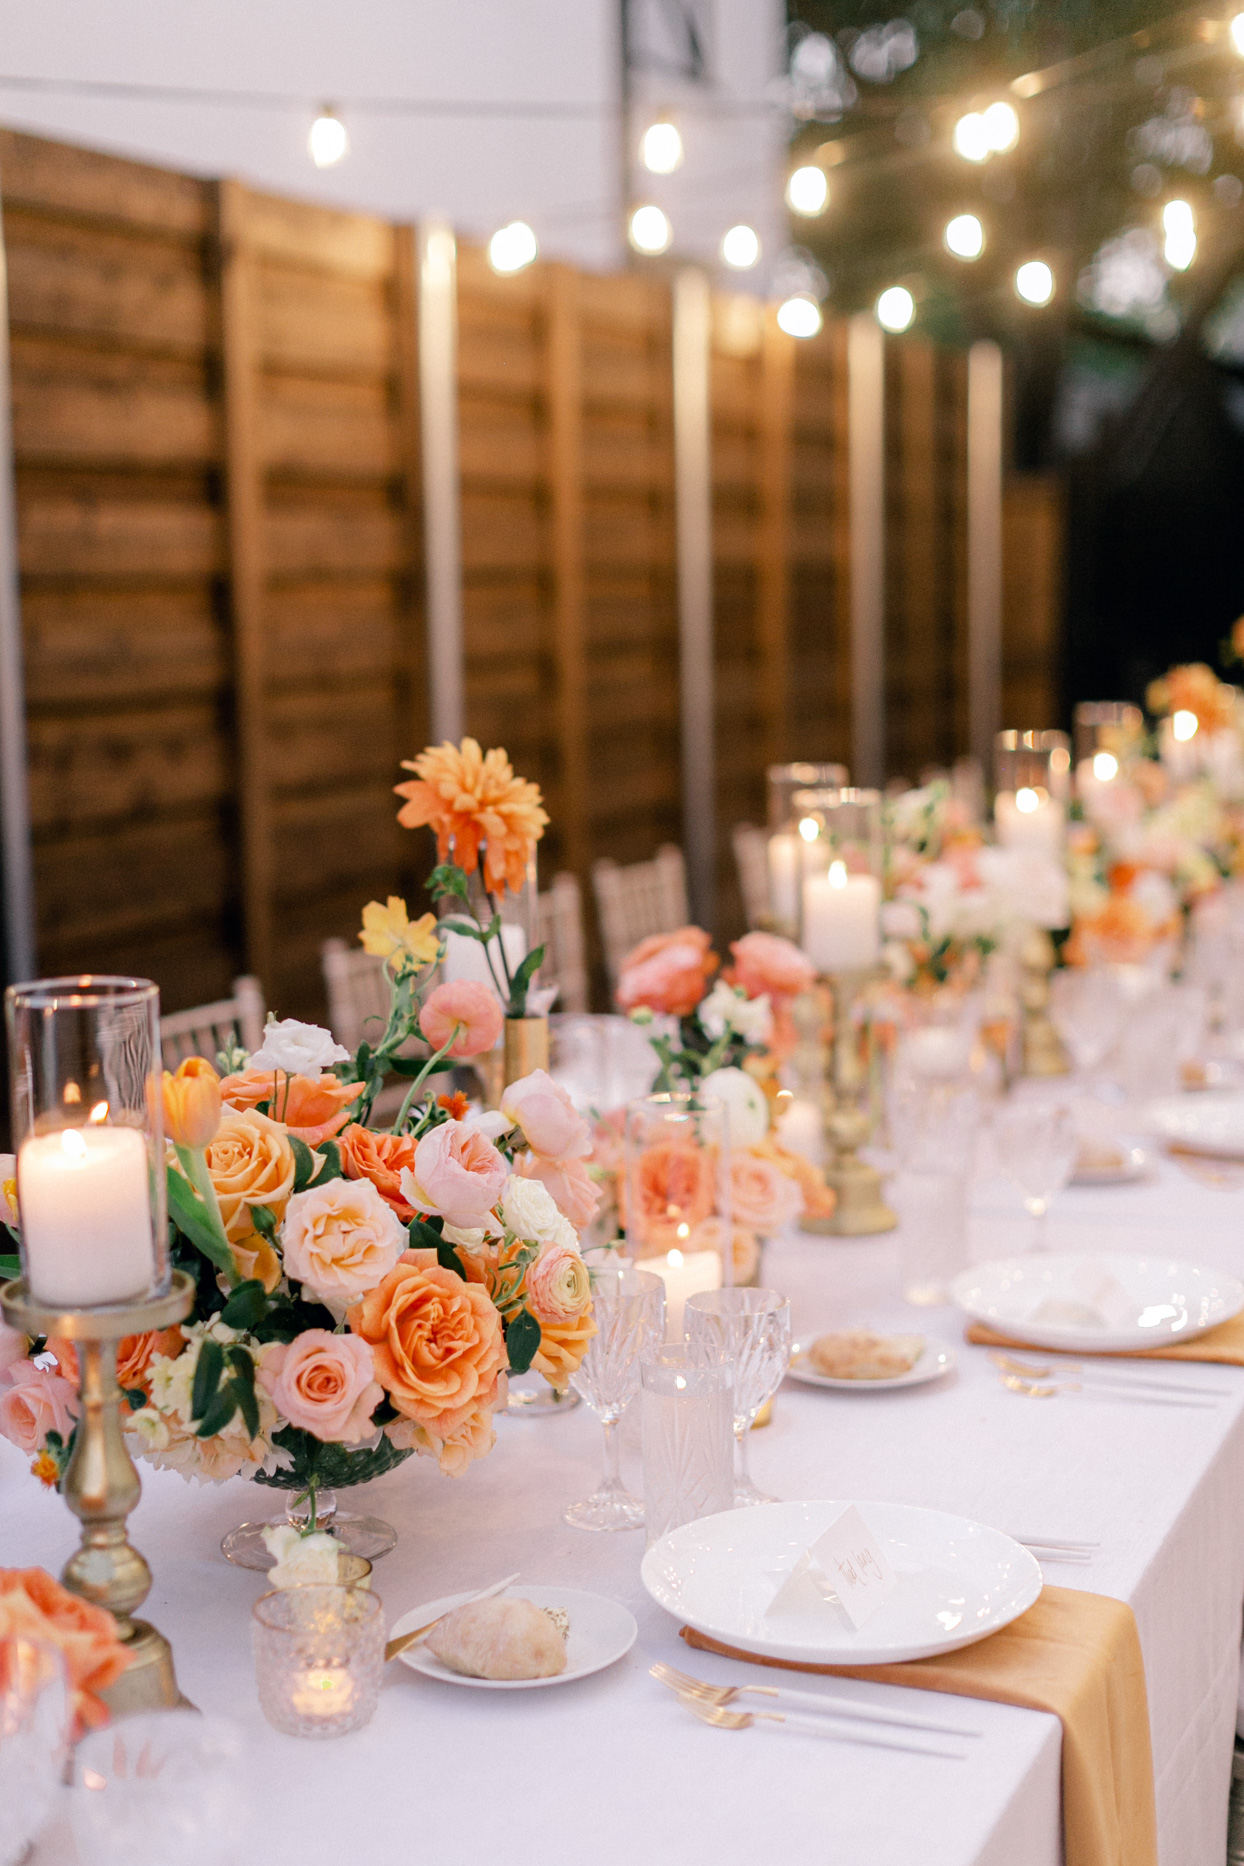 long white wedding table with orange and yellow flowers and decorations